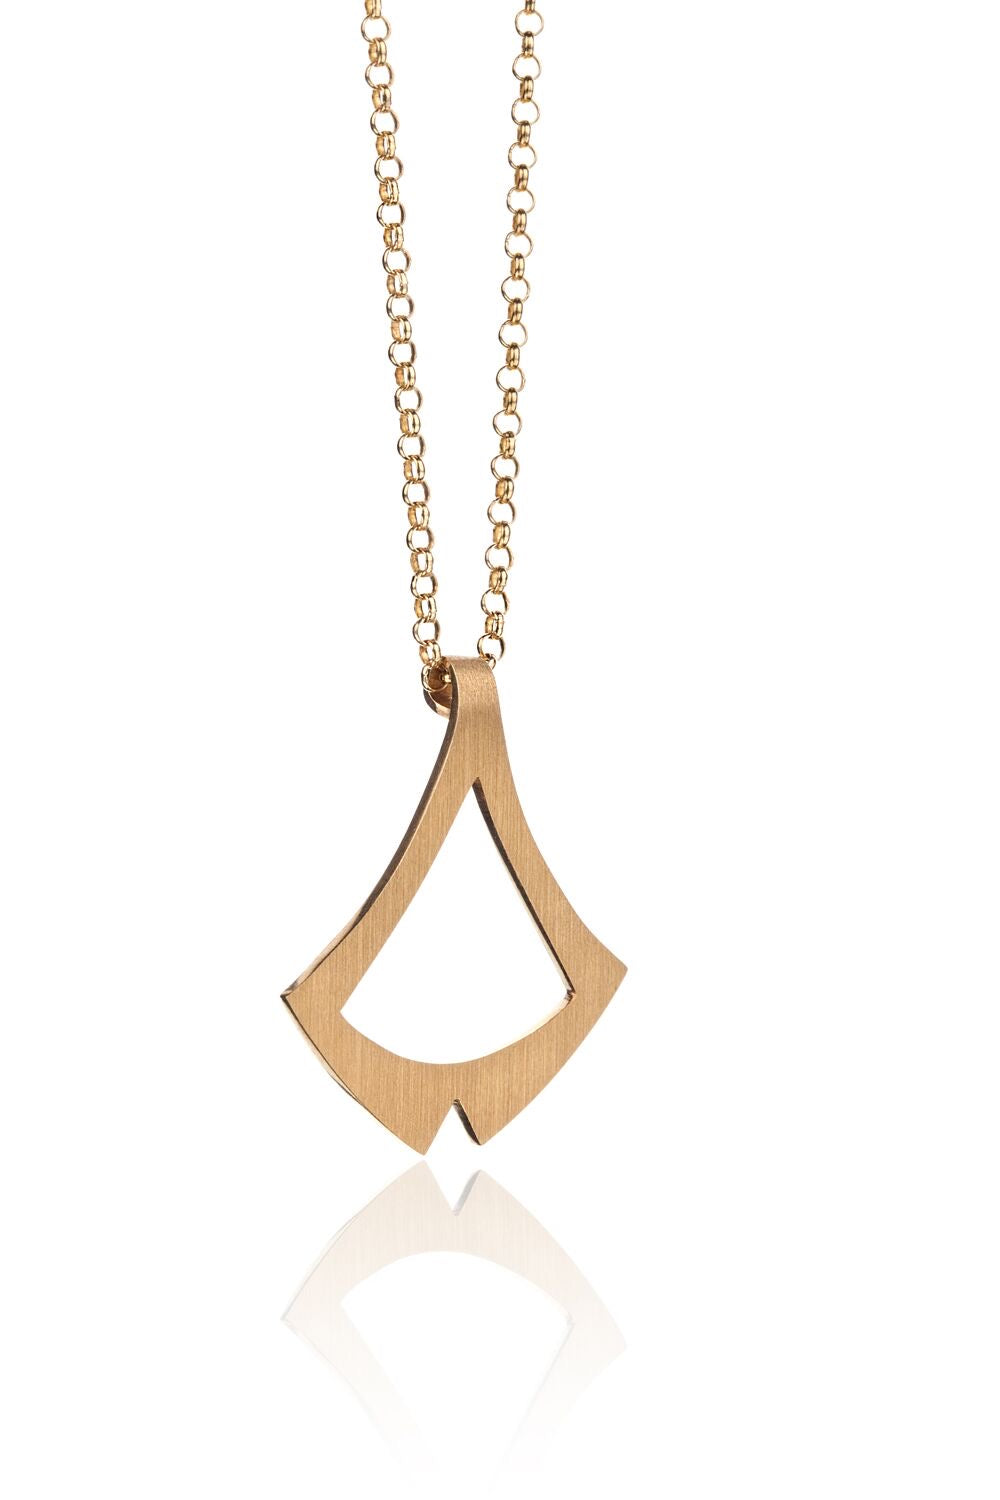 BAKKA - Sail Necklace Necklaces - Norwegian Jewelry features artisan jewellery designers and goldsmiths from Norway.